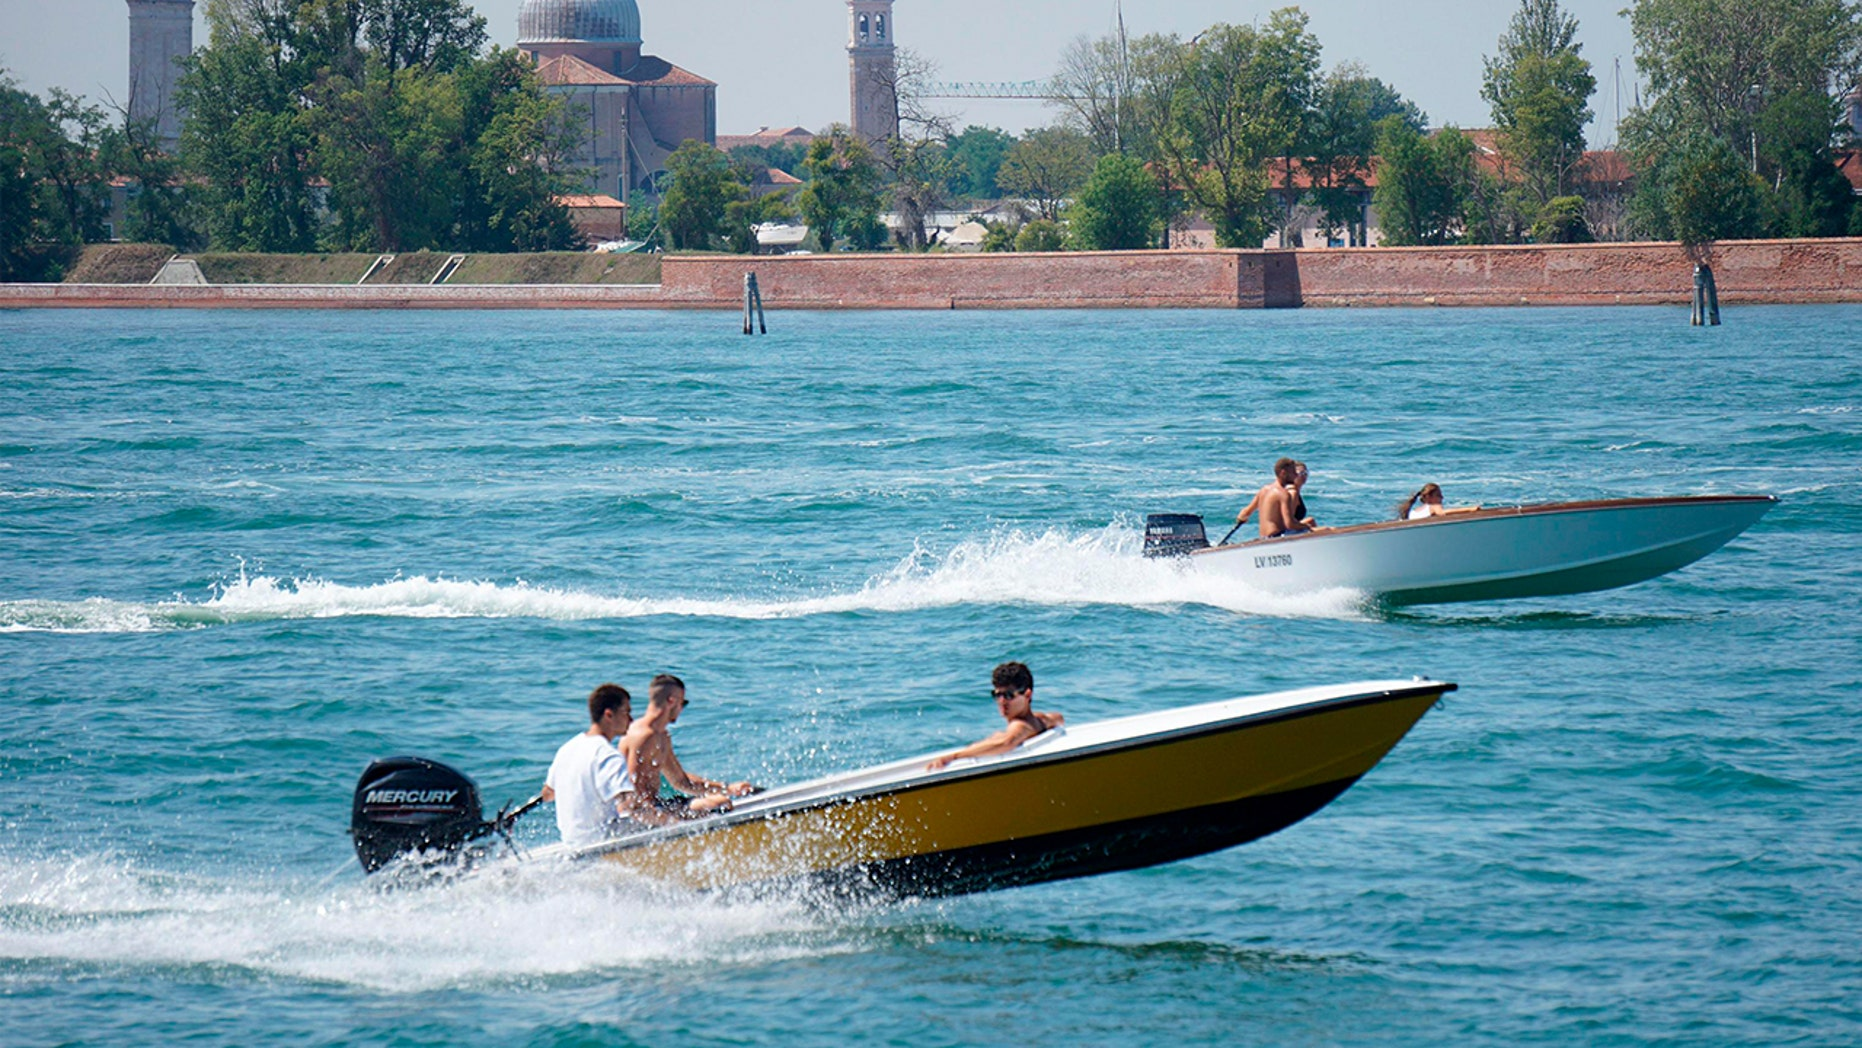 Starting August 1, recreational boats including canoes, kayaks, paddleboards and more will be banned from the canal.